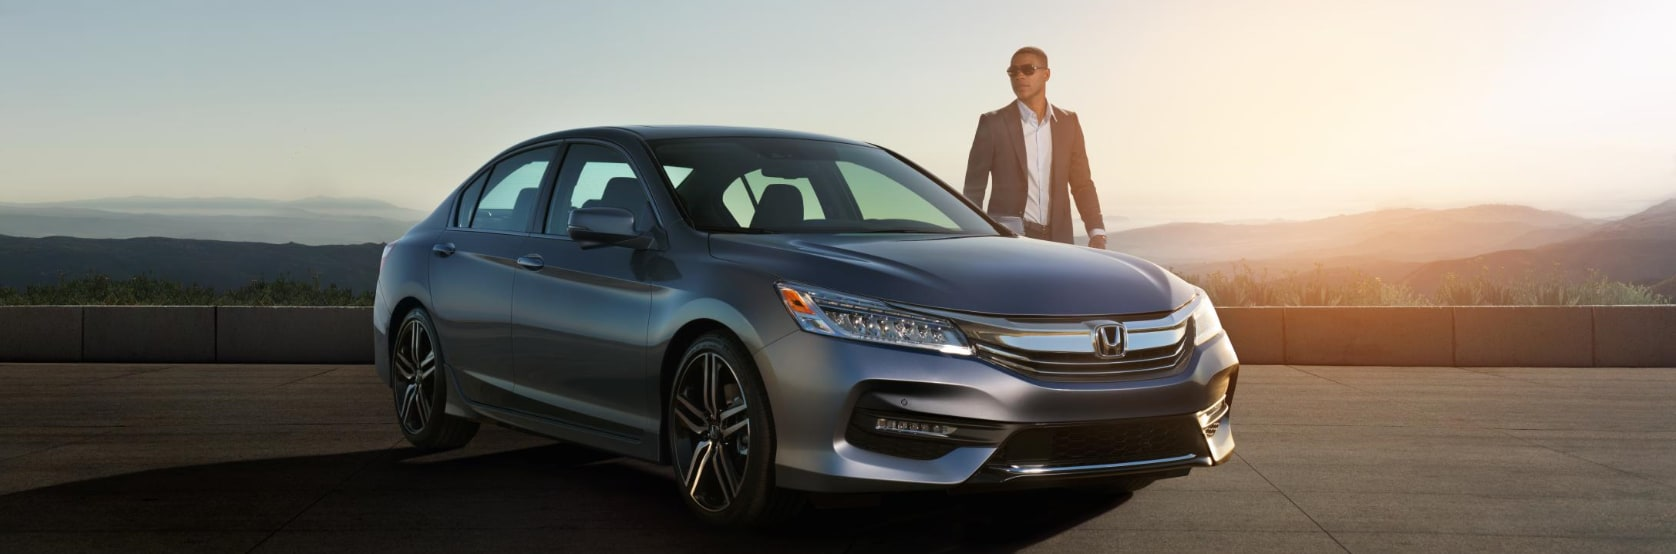 How Does The 2017 Honda Accord Compare To The 2017 Ford Fusion?